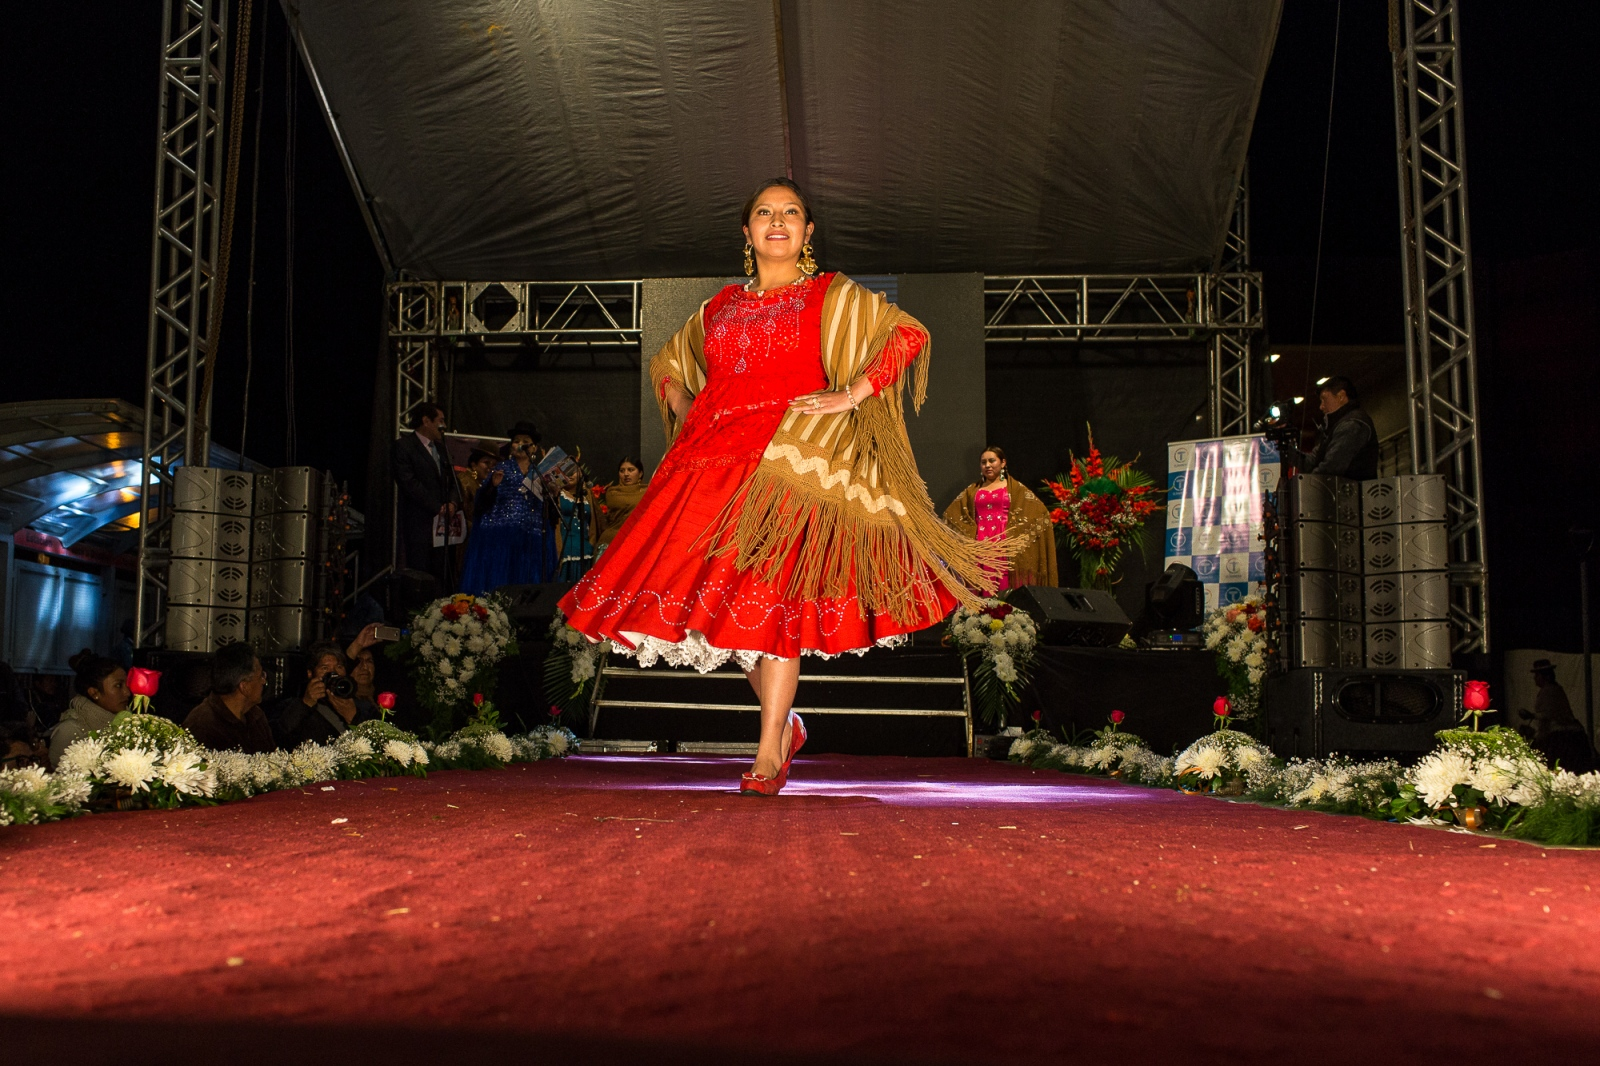 A model presents a fashion design on the catwalk during a fashion event in El Alto.